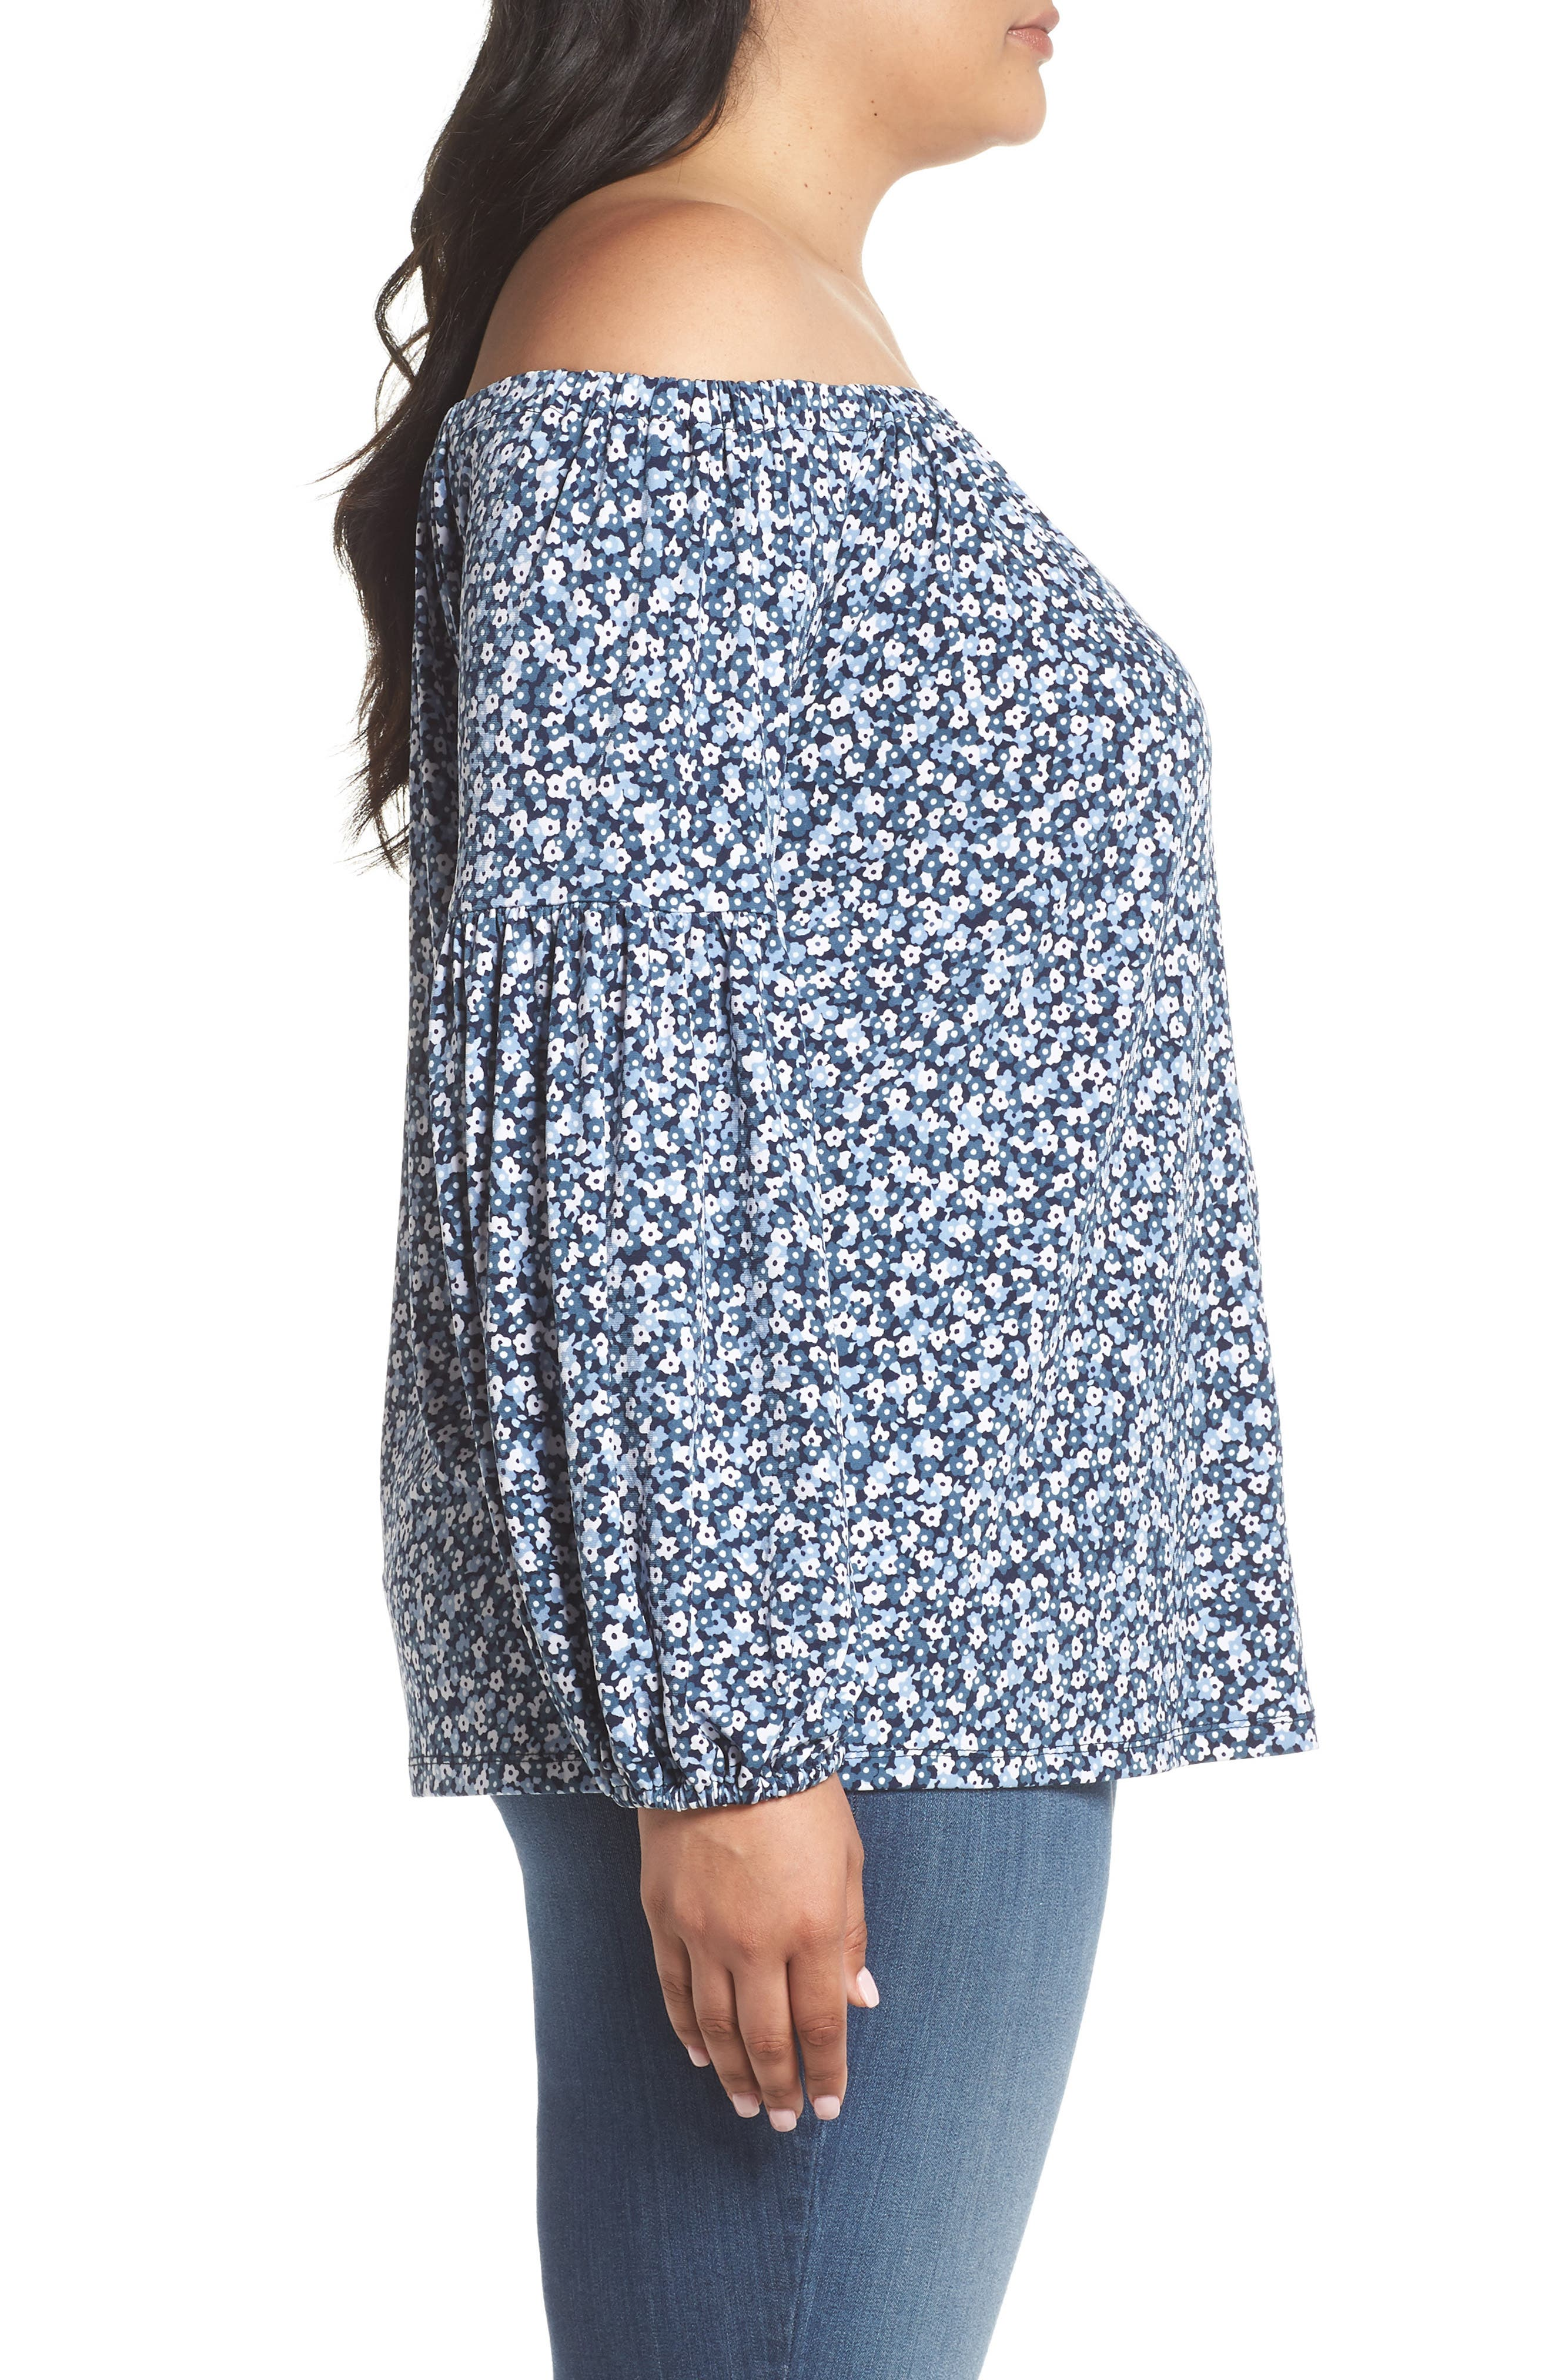 Collage Floral Off the Shoulder Top,                             Alternate thumbnail 3, color,                             True Navy/ Light Chambray